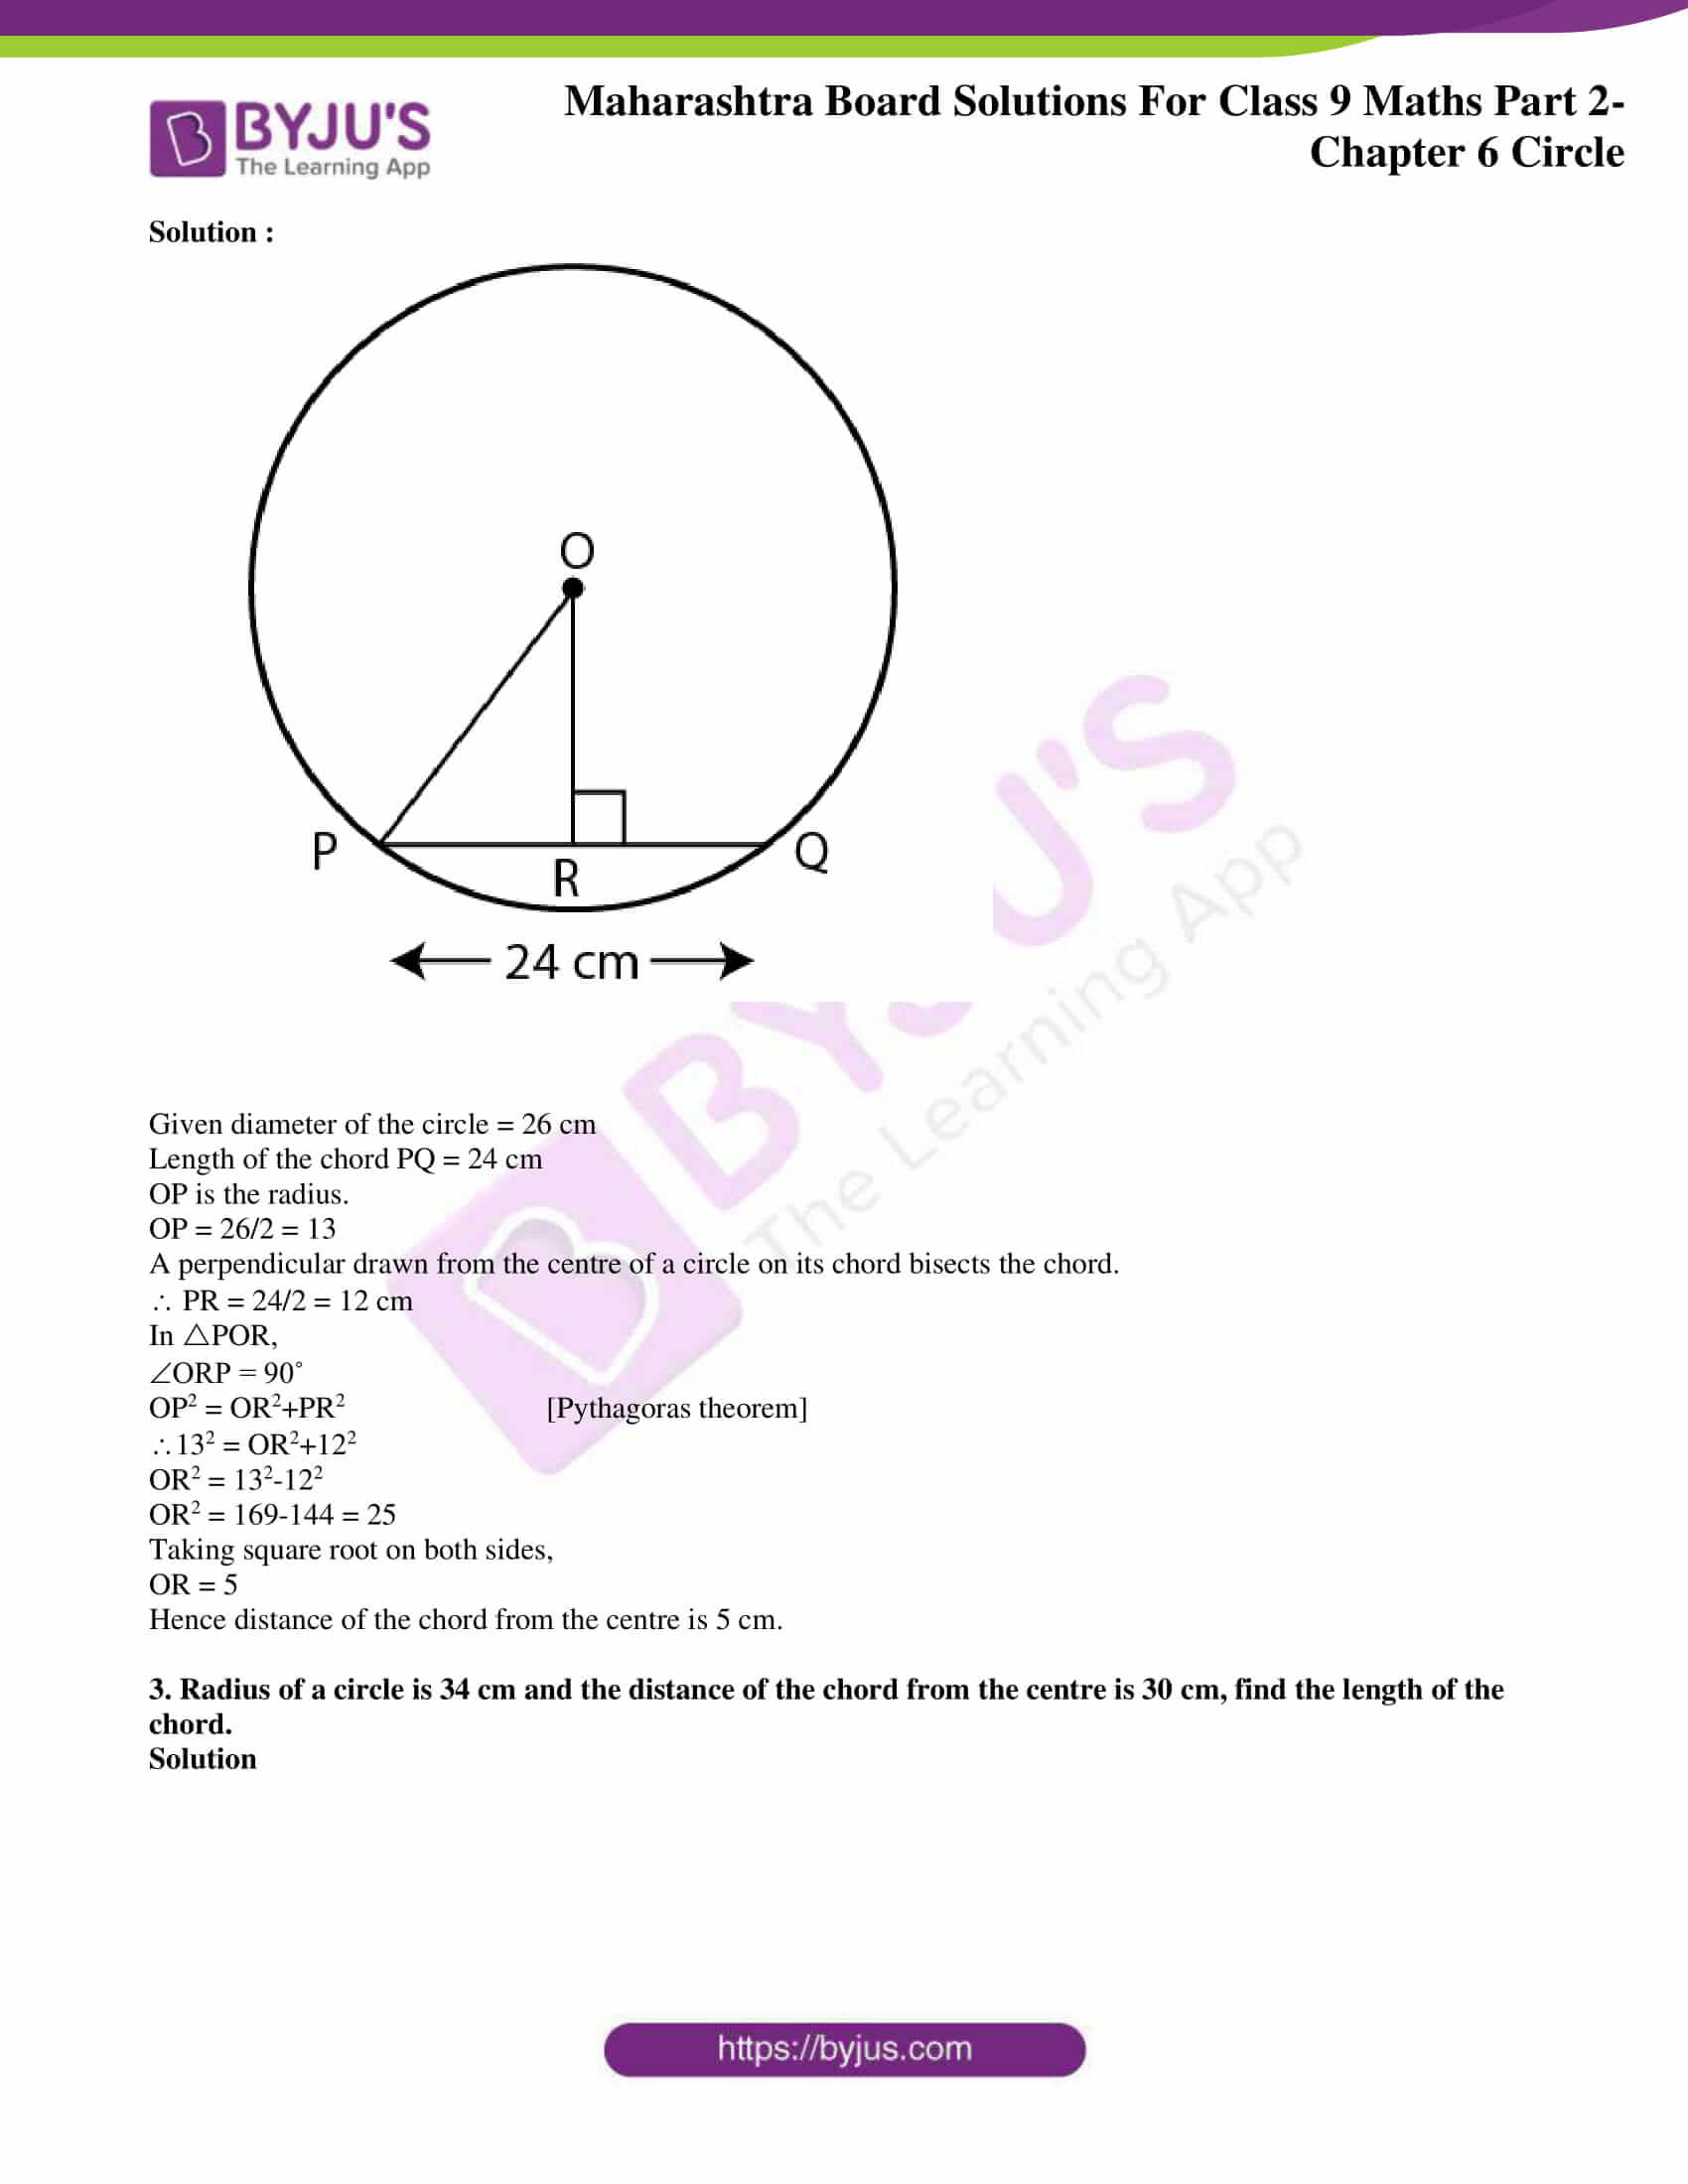 msbshse solutions for class 9 maths part 2 chapter 6 02